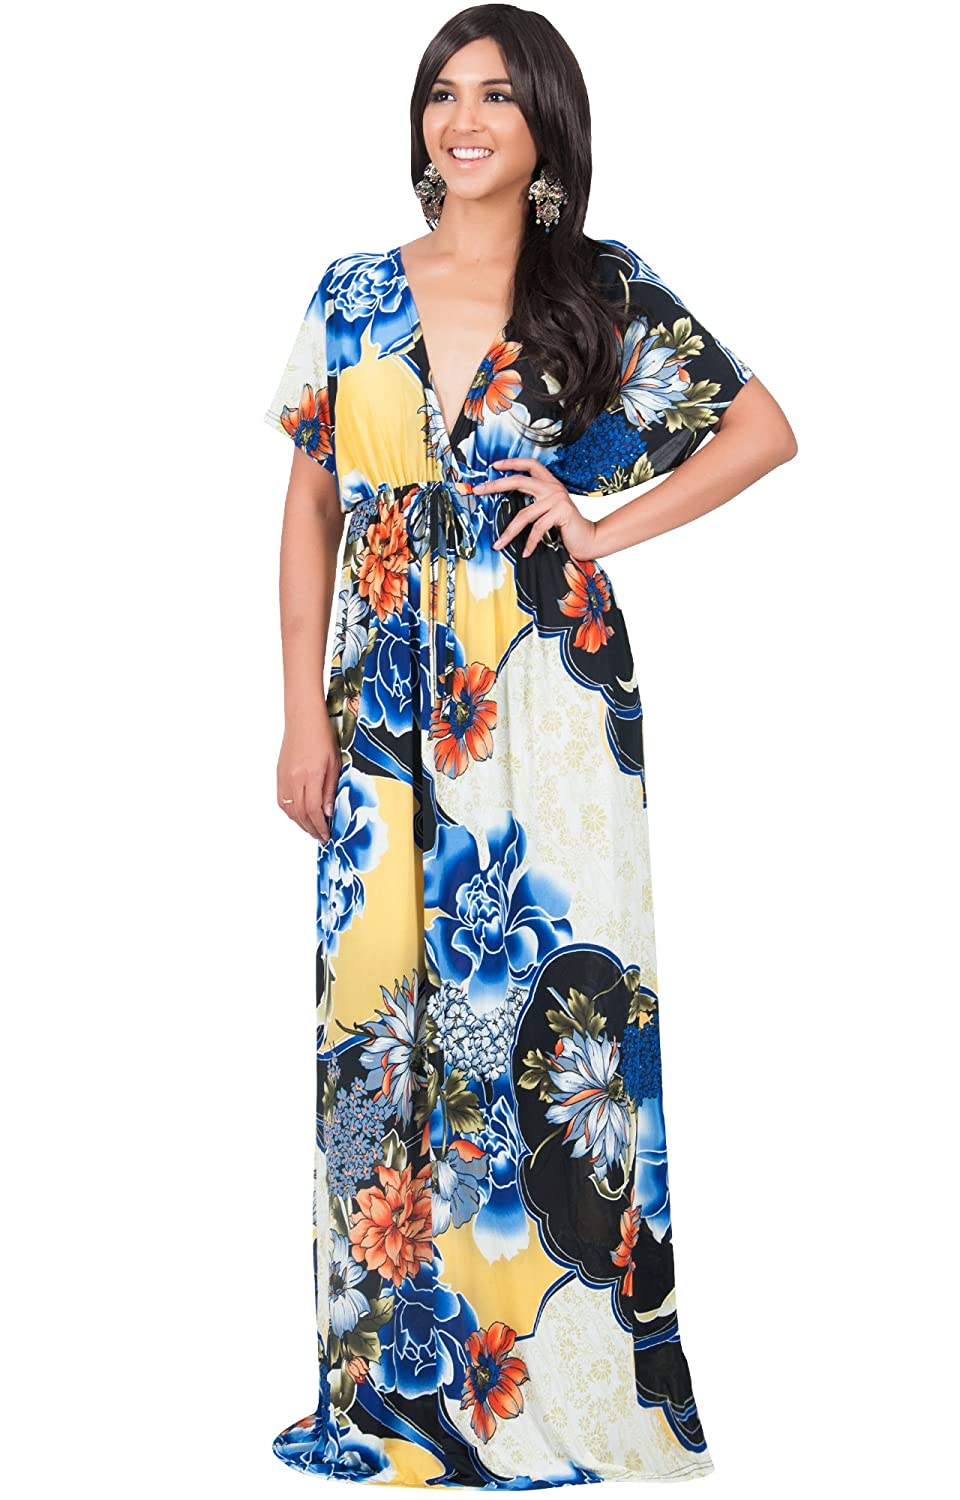 KOH KOH Womens Kimono Short Sleeve V-Neck Summer Floral Flowy Gown Maxi  Dress at Amazon Women s Clothing store  88cb494a3